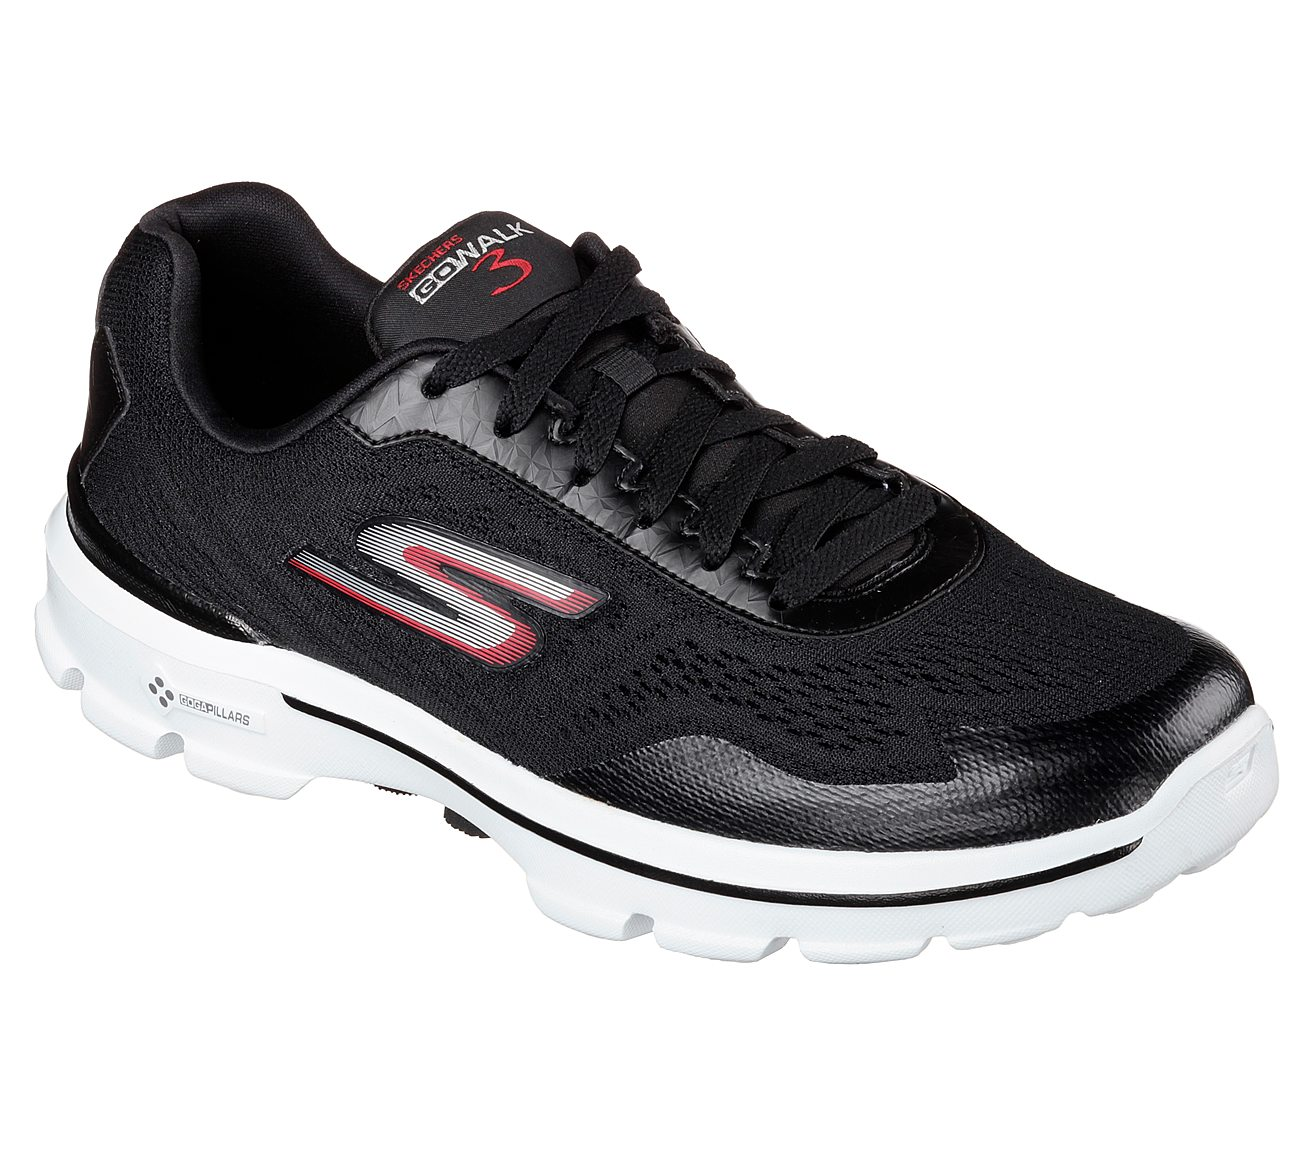 7240e0eae0f Buy SKECHERS Skechers GOwalk 3 - Reaction Skechers Performance Shoes ...